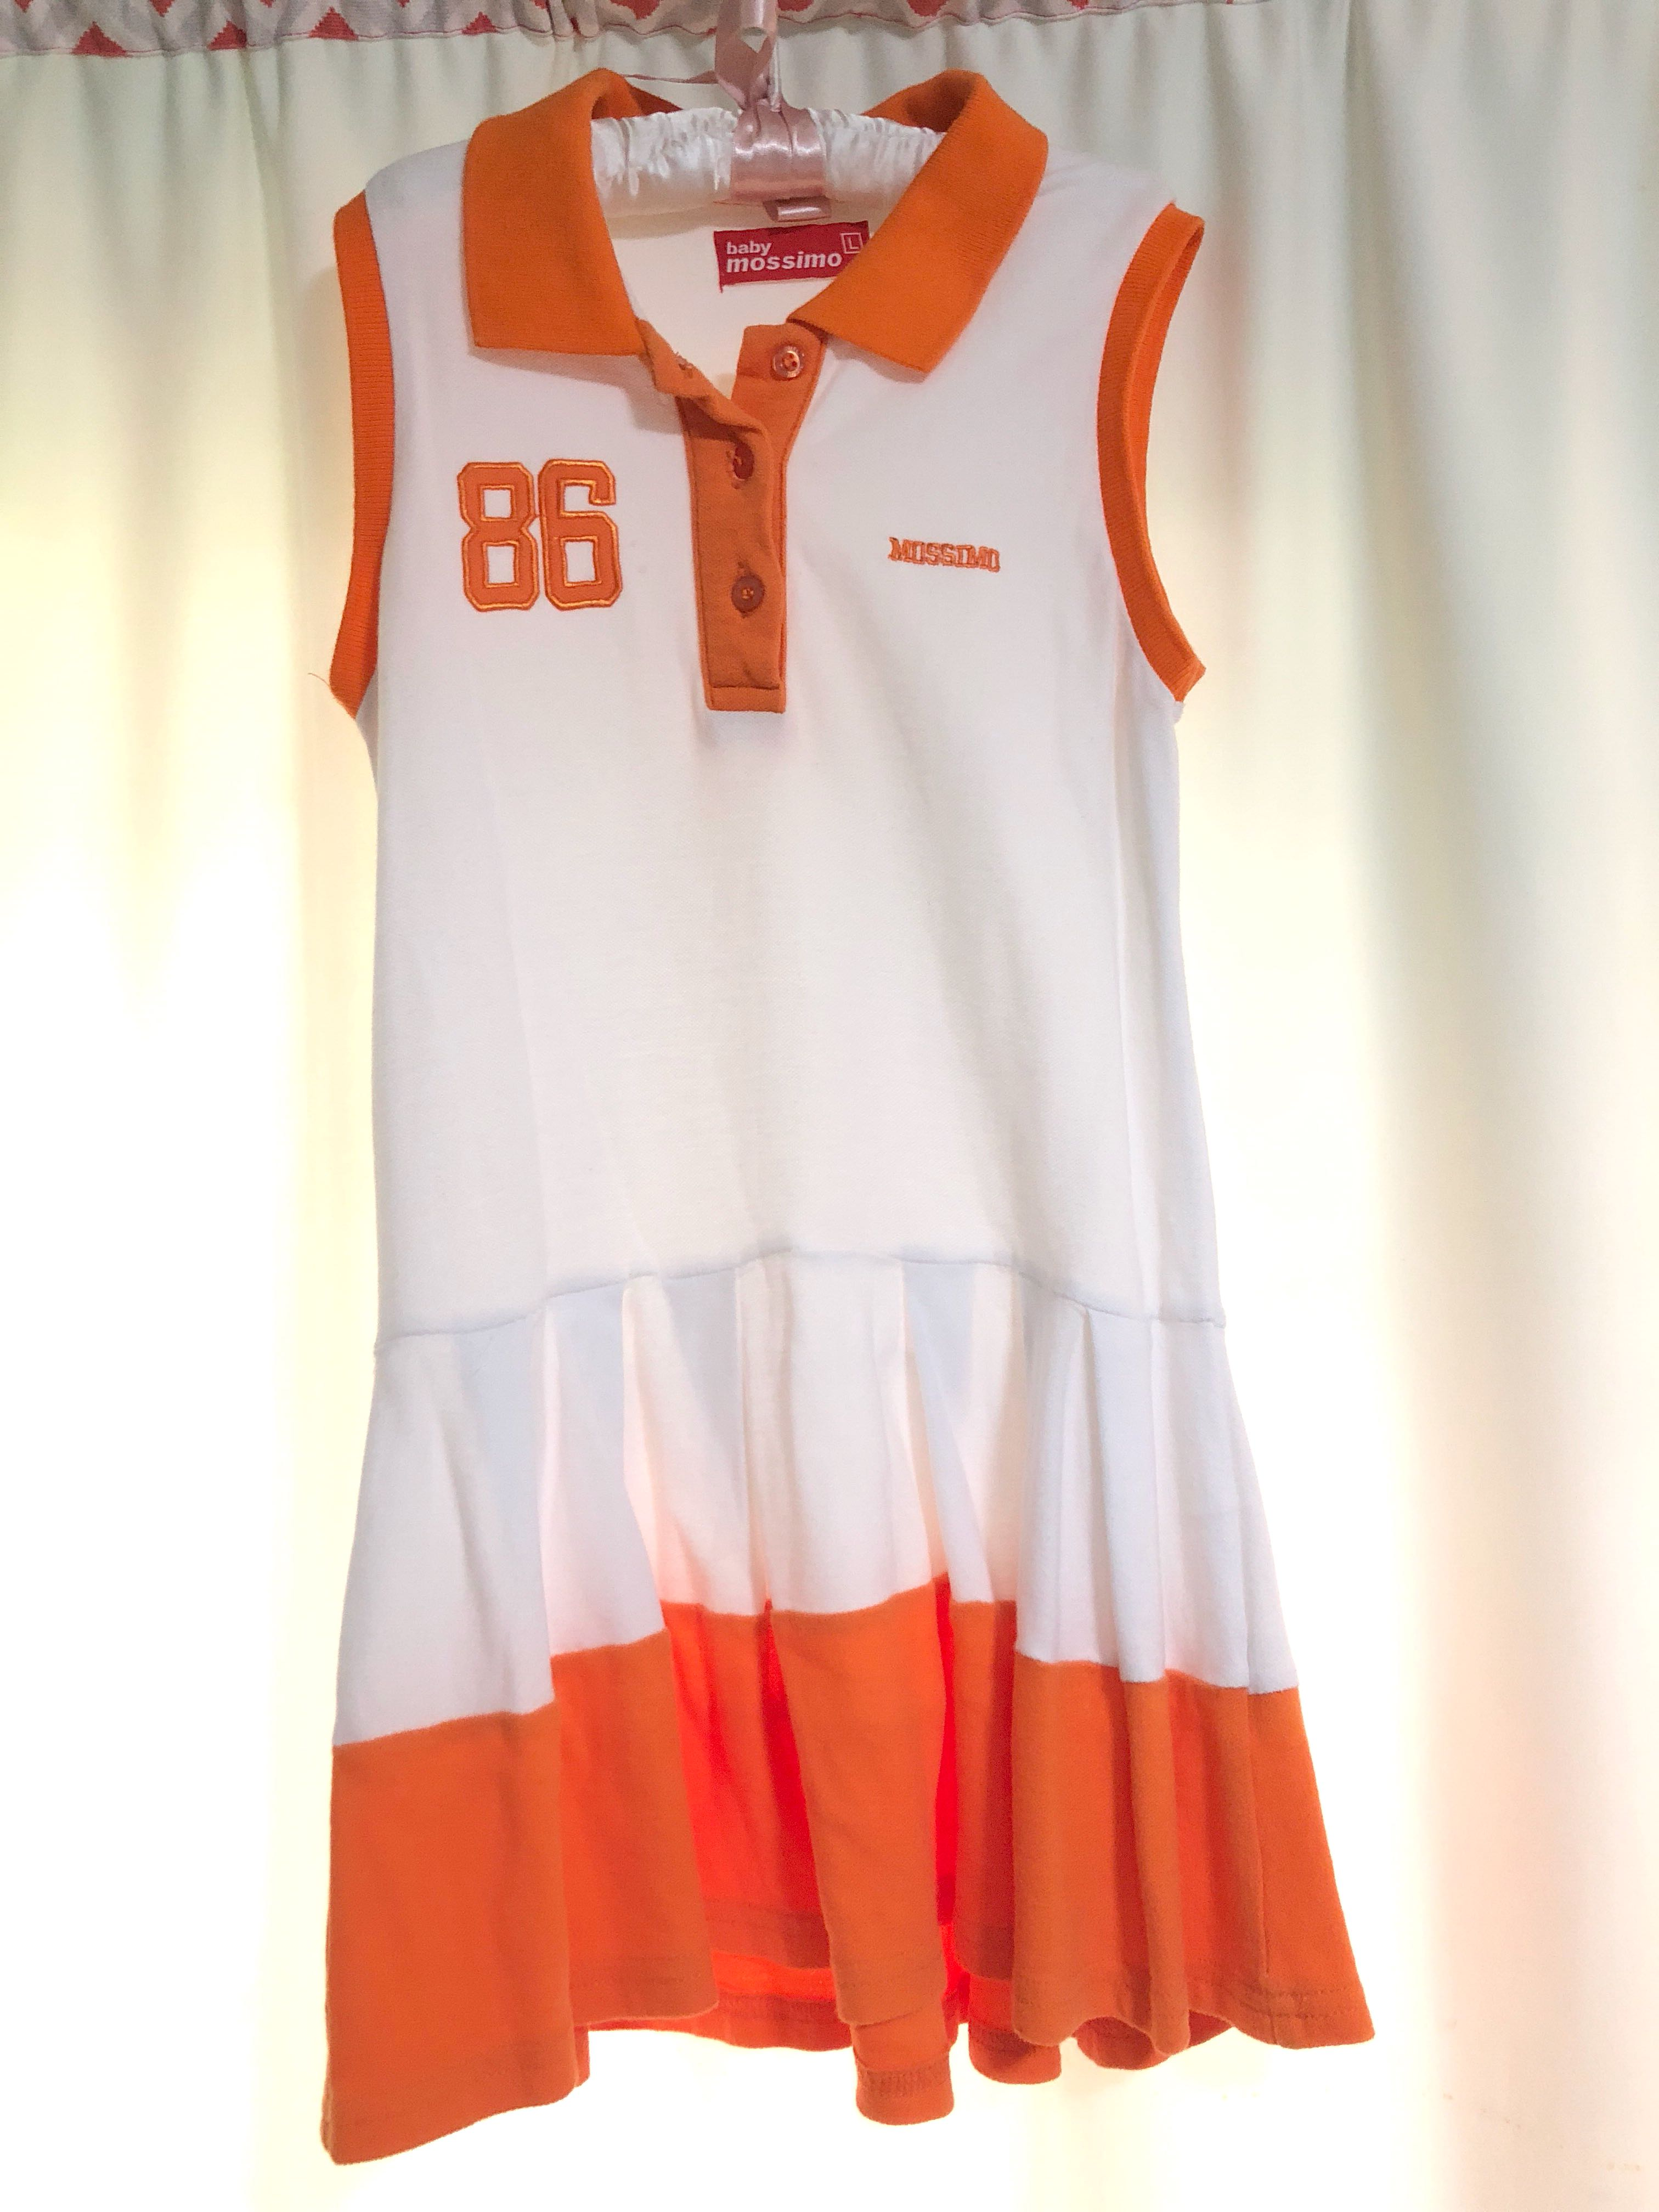 38d3d0e354bf Mossimo White Golf Dress with Orange Trimmings